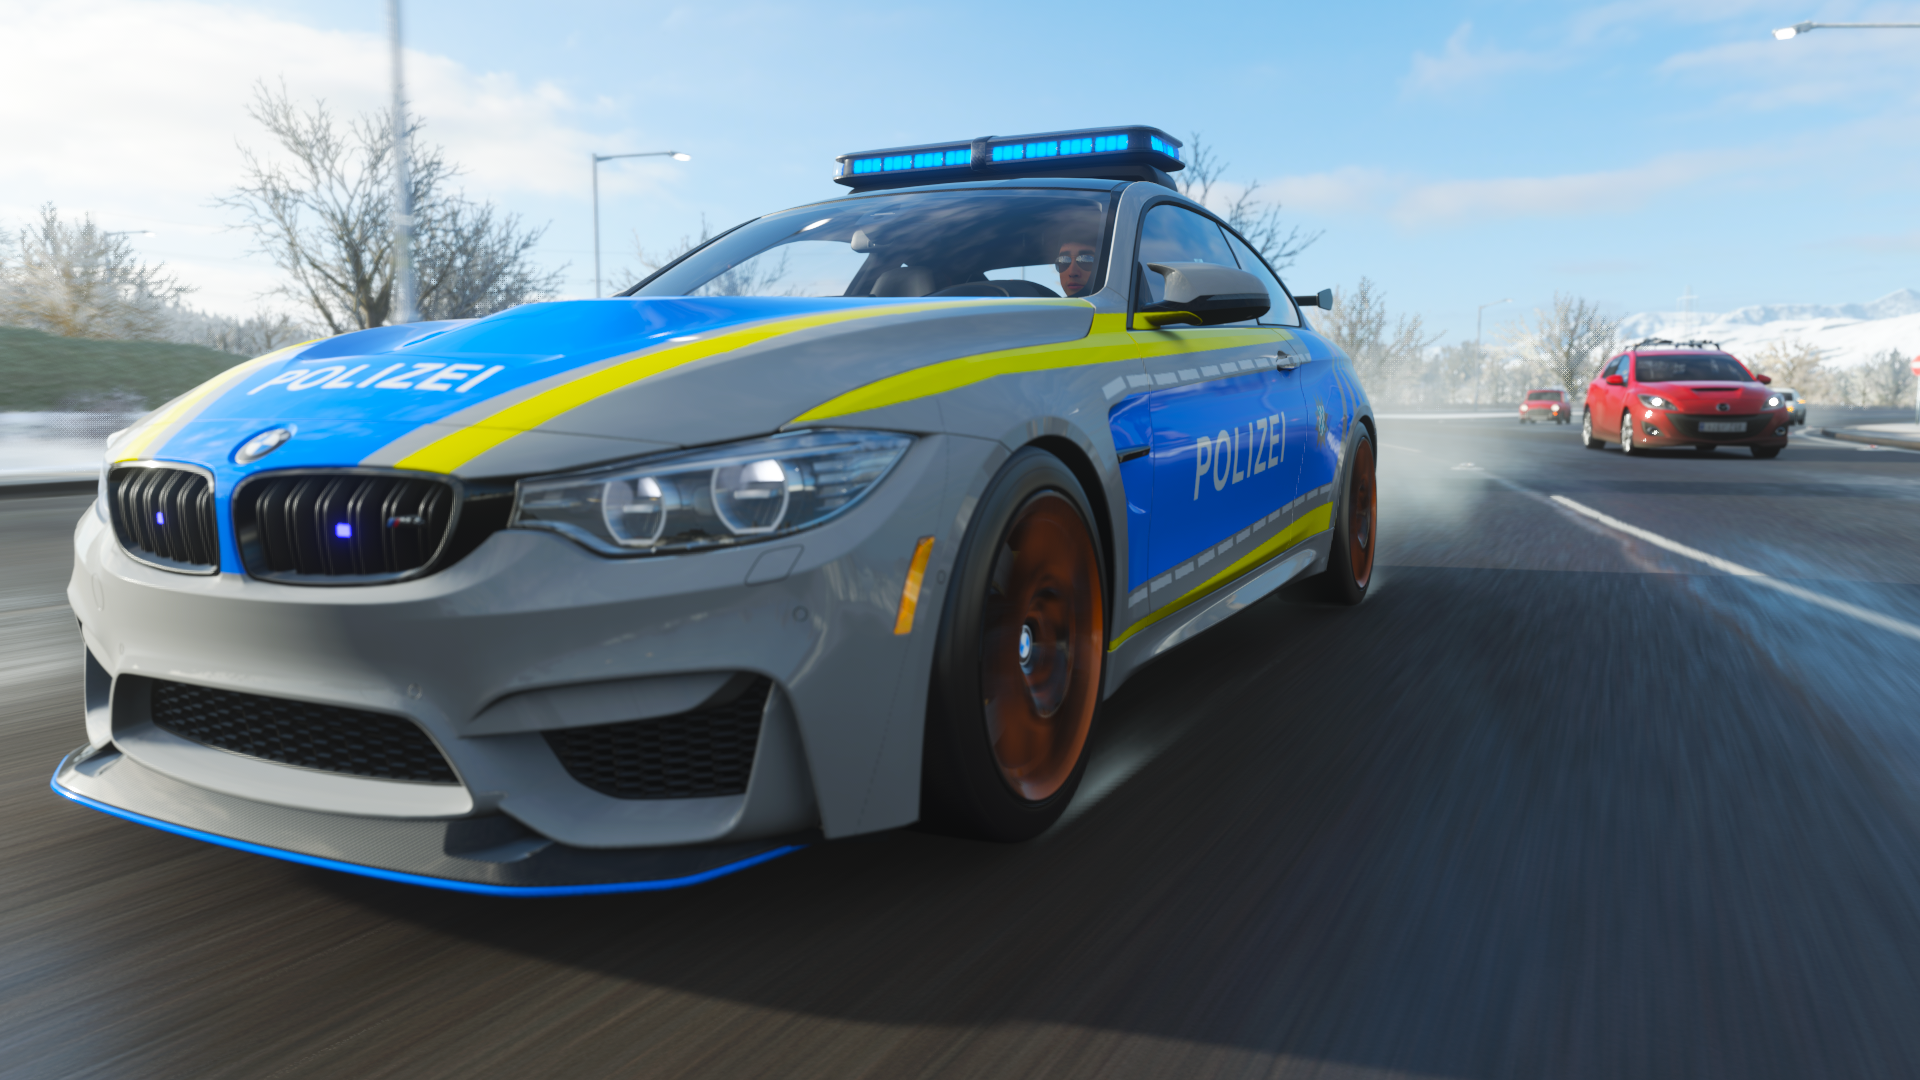 Look Out! Police! | Police-Cars in FH4 | Geekstyle Living